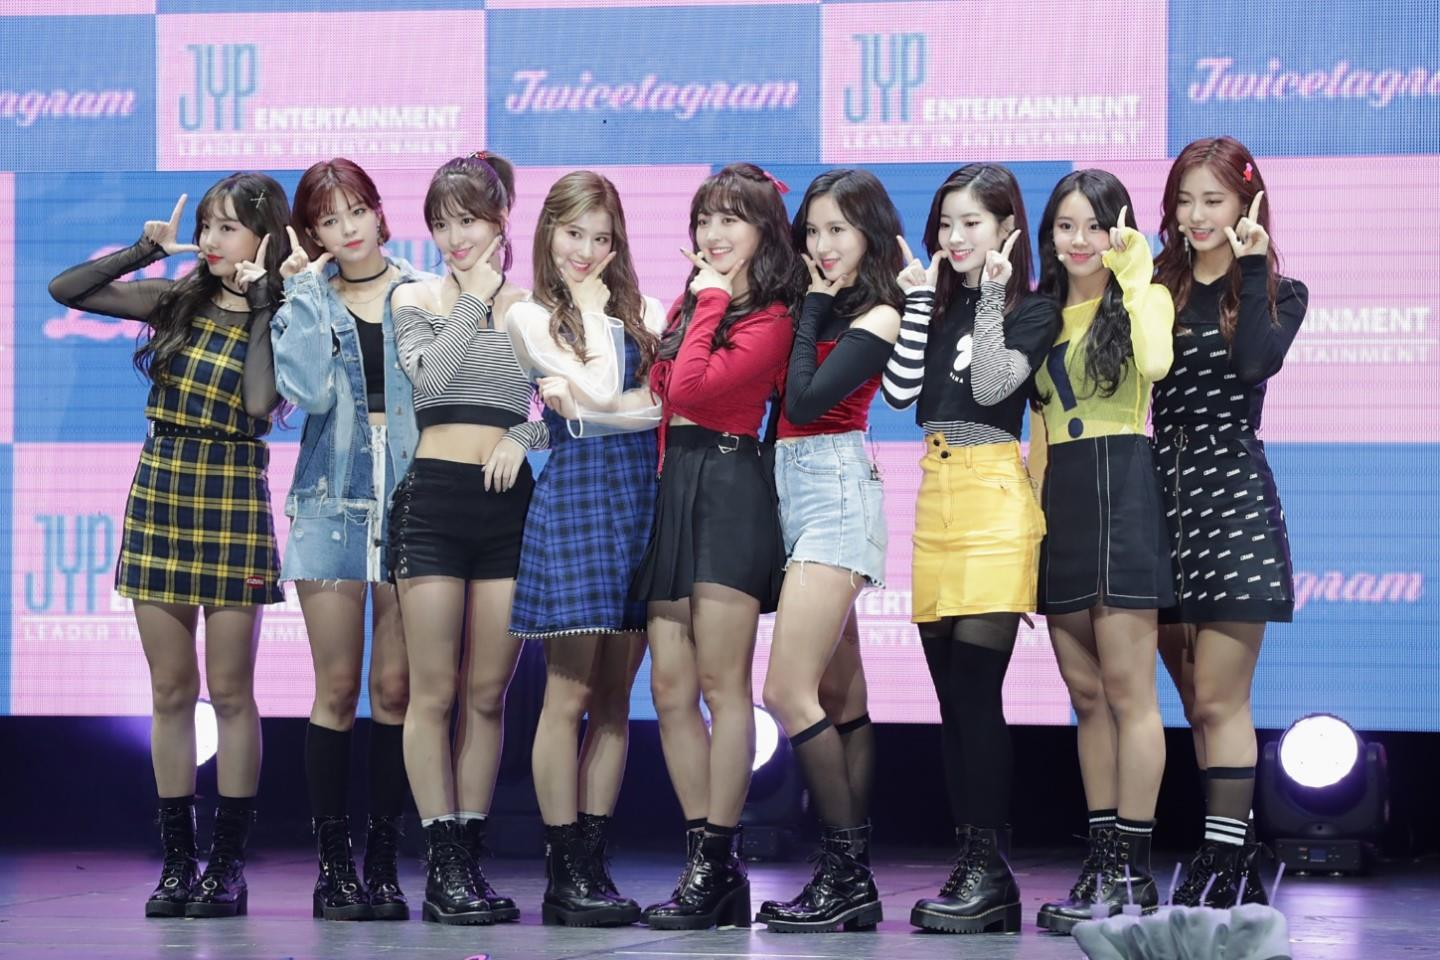 TWICE Tickets | TWICE Tour Dates 2020 and Concert Tickets - viagogo